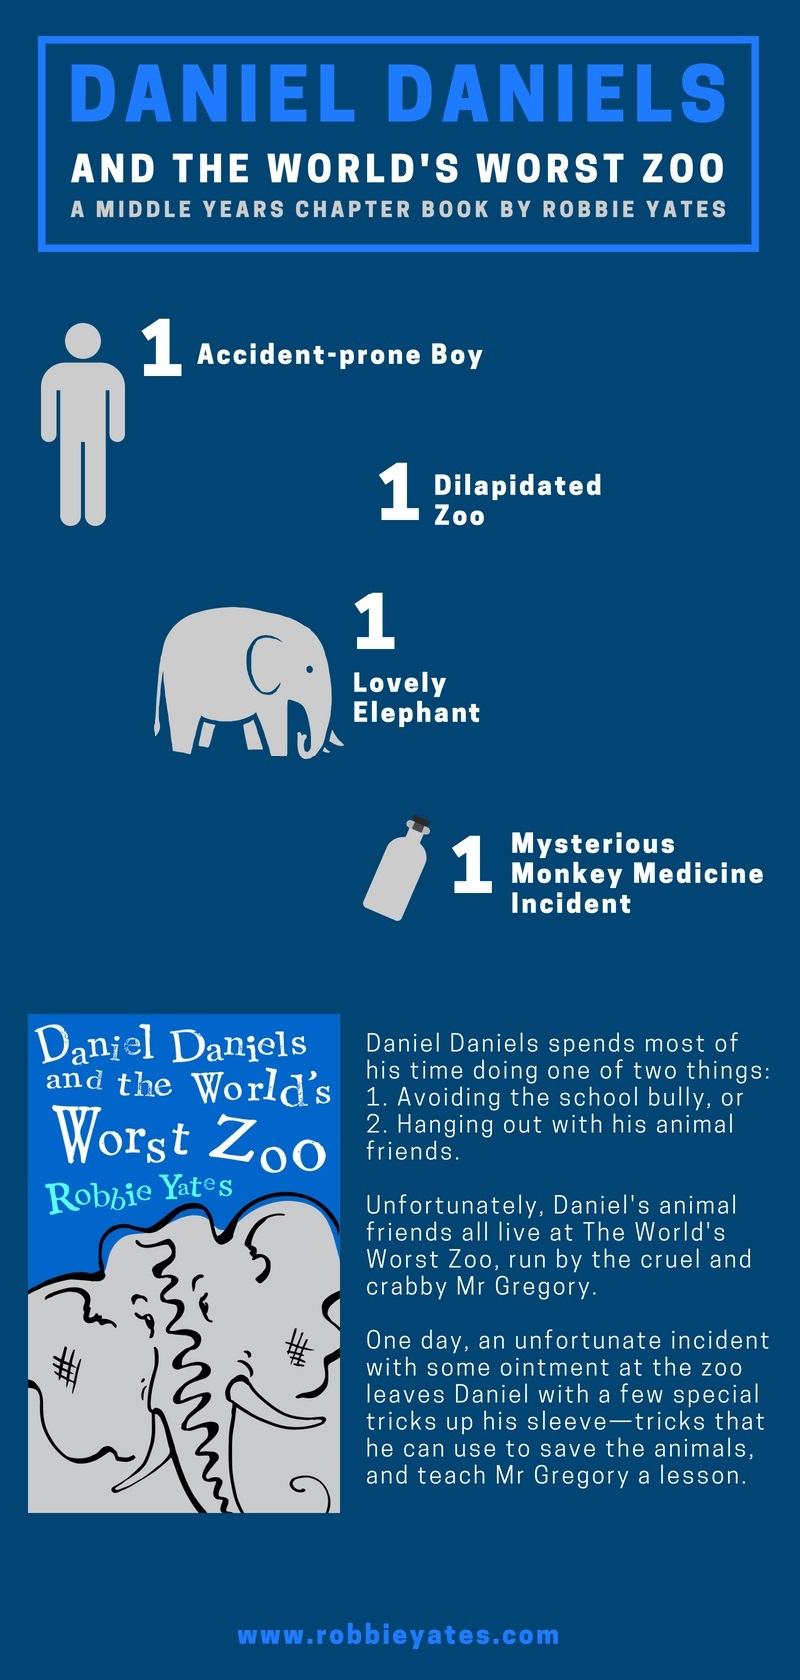 WP_Version Daniel Daniels Promo Infographic.jpg